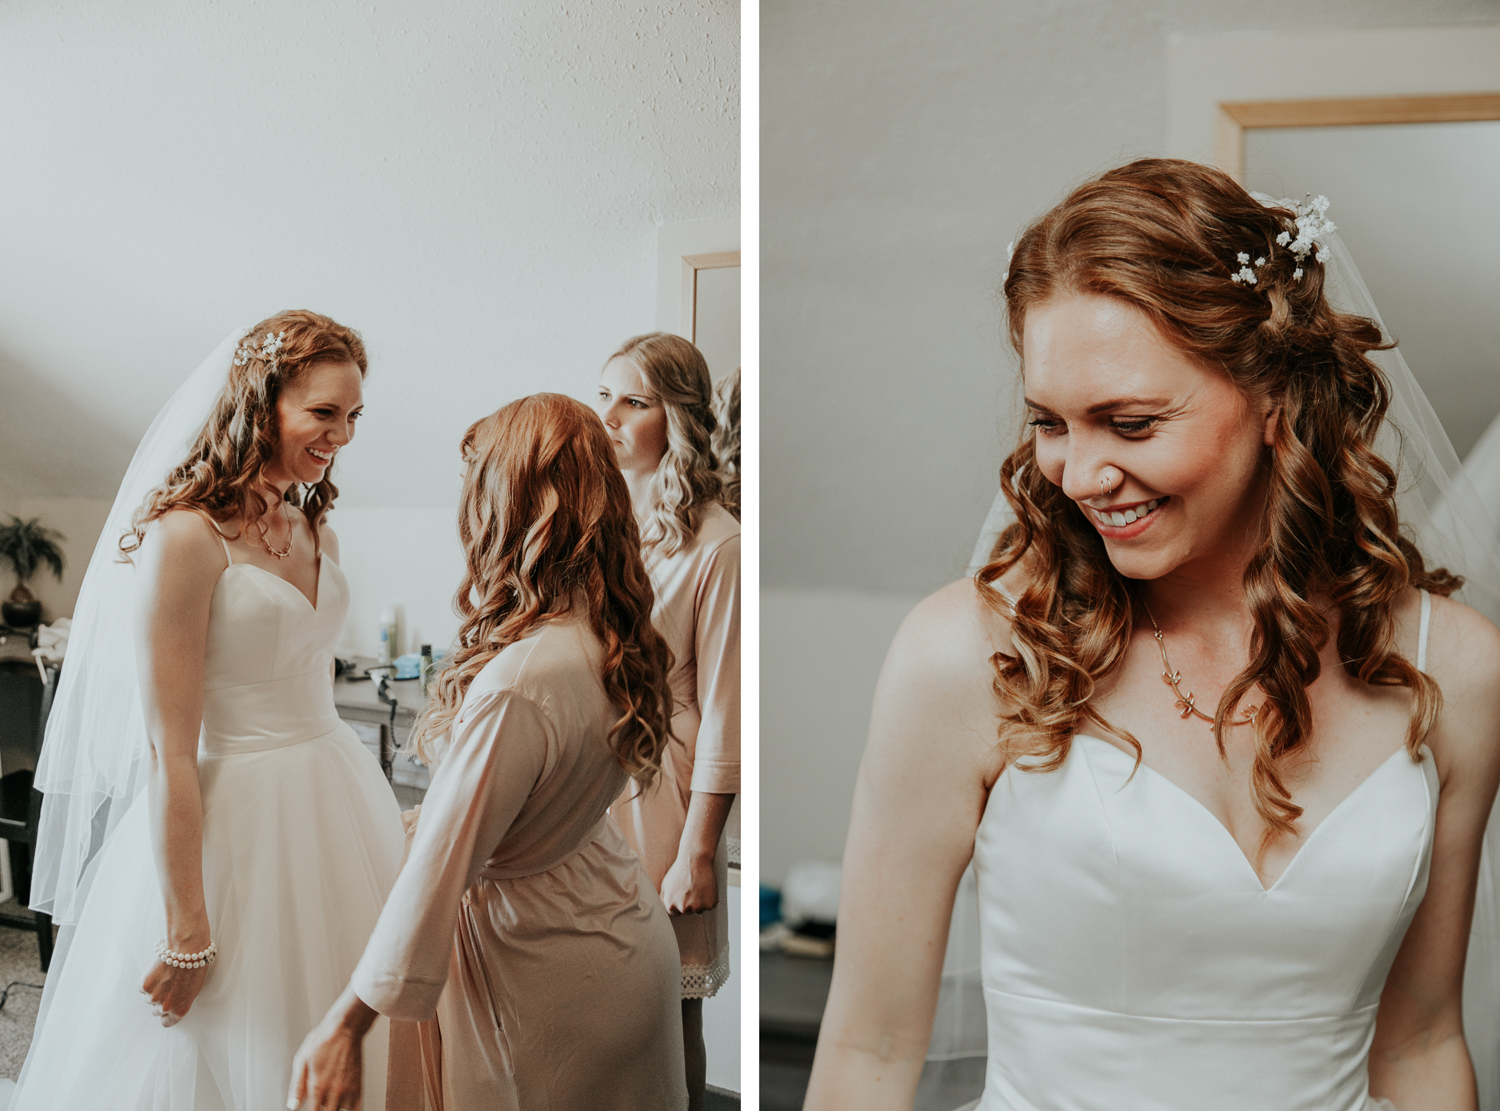 lethbridge-wedding-photographer-love-and-be-loved-photography-dan-tynnea-picture-image-photo-134.jpg